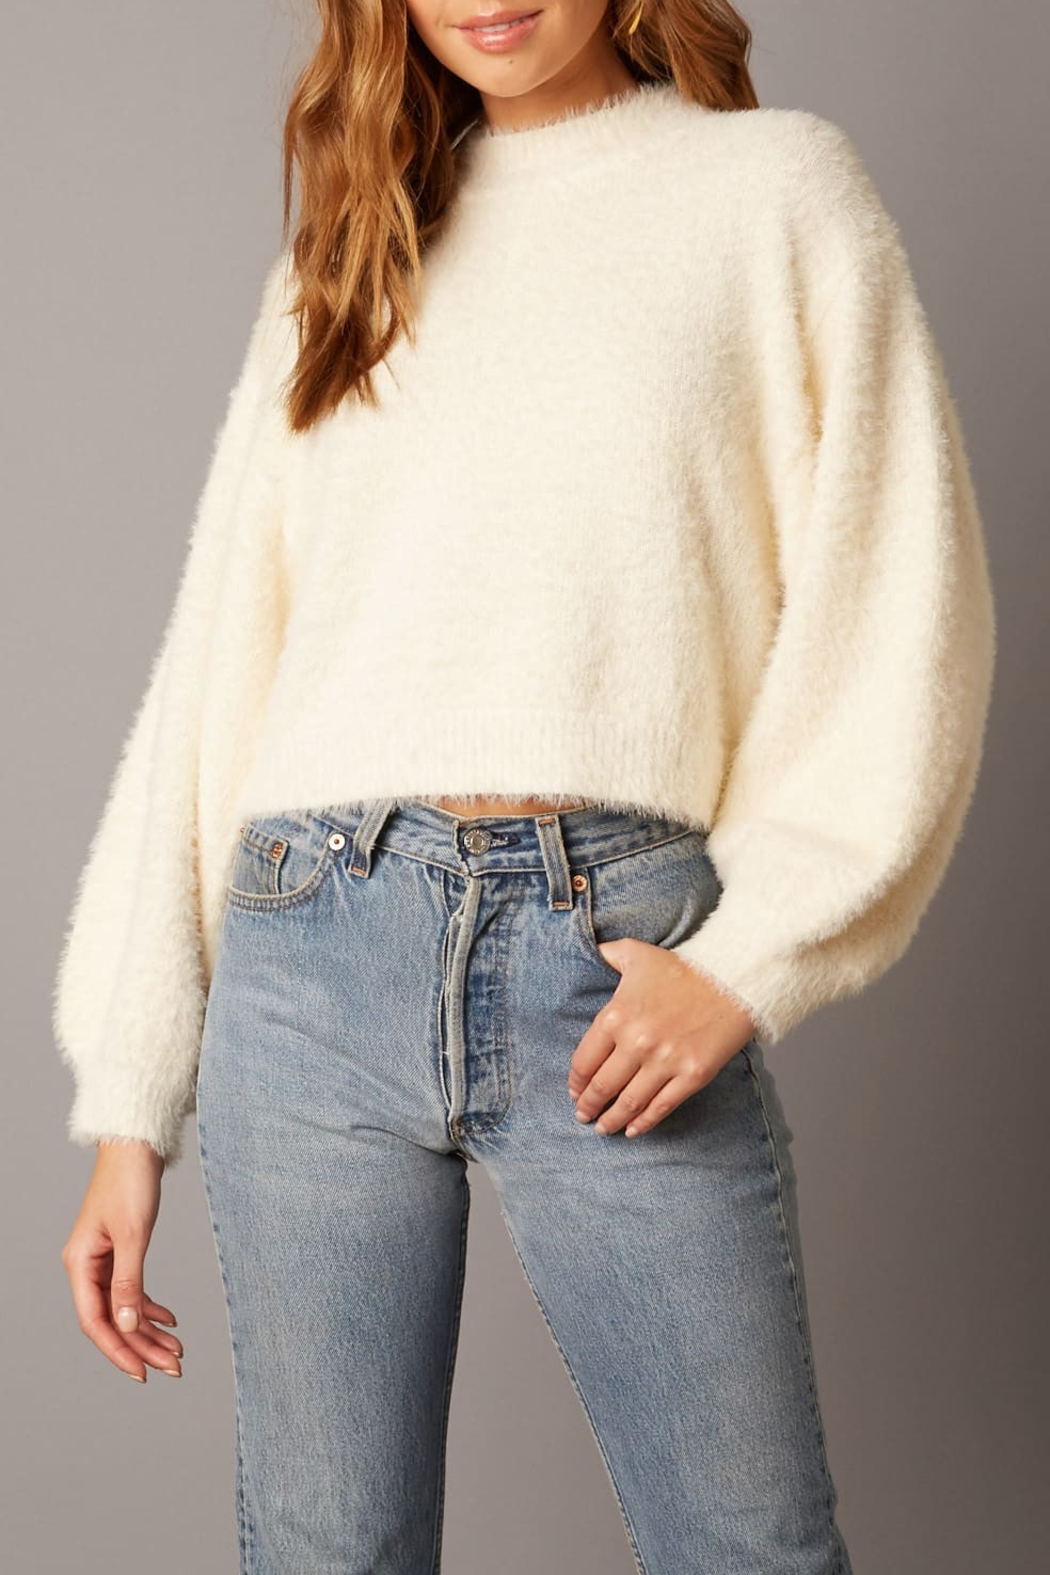 Cotton Candy LA Fuzzy Sweater Ivory - Main Image